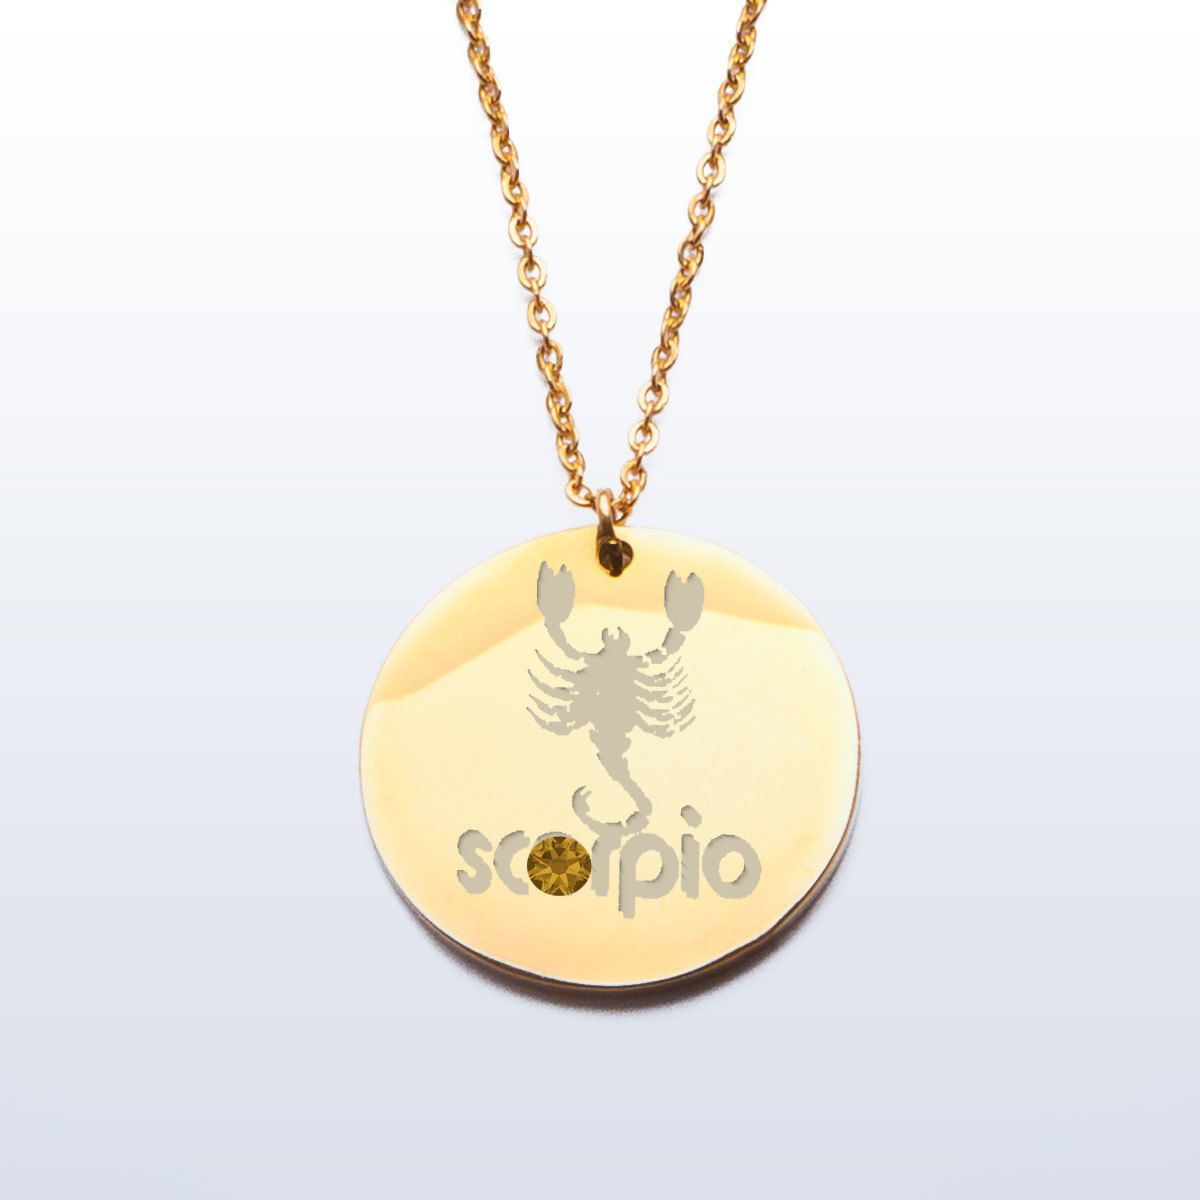 scorpio pendant gold francesca charm do necklace product g zodiac cl clalternate alternate s